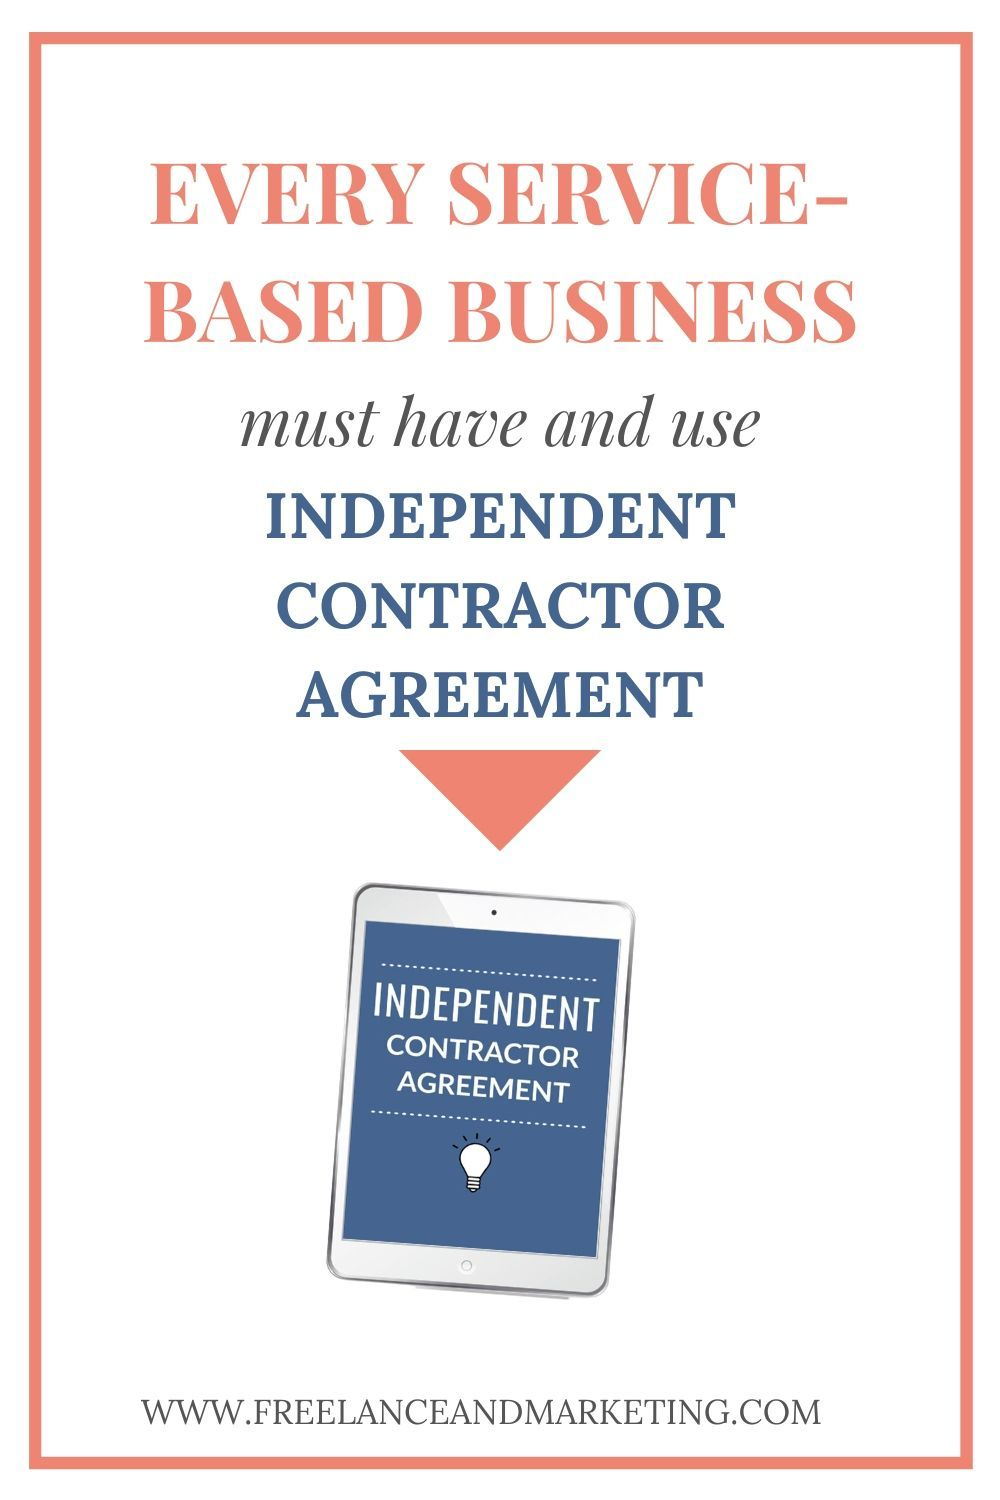 Service Businesses Need An Independent Contractor Agreement In